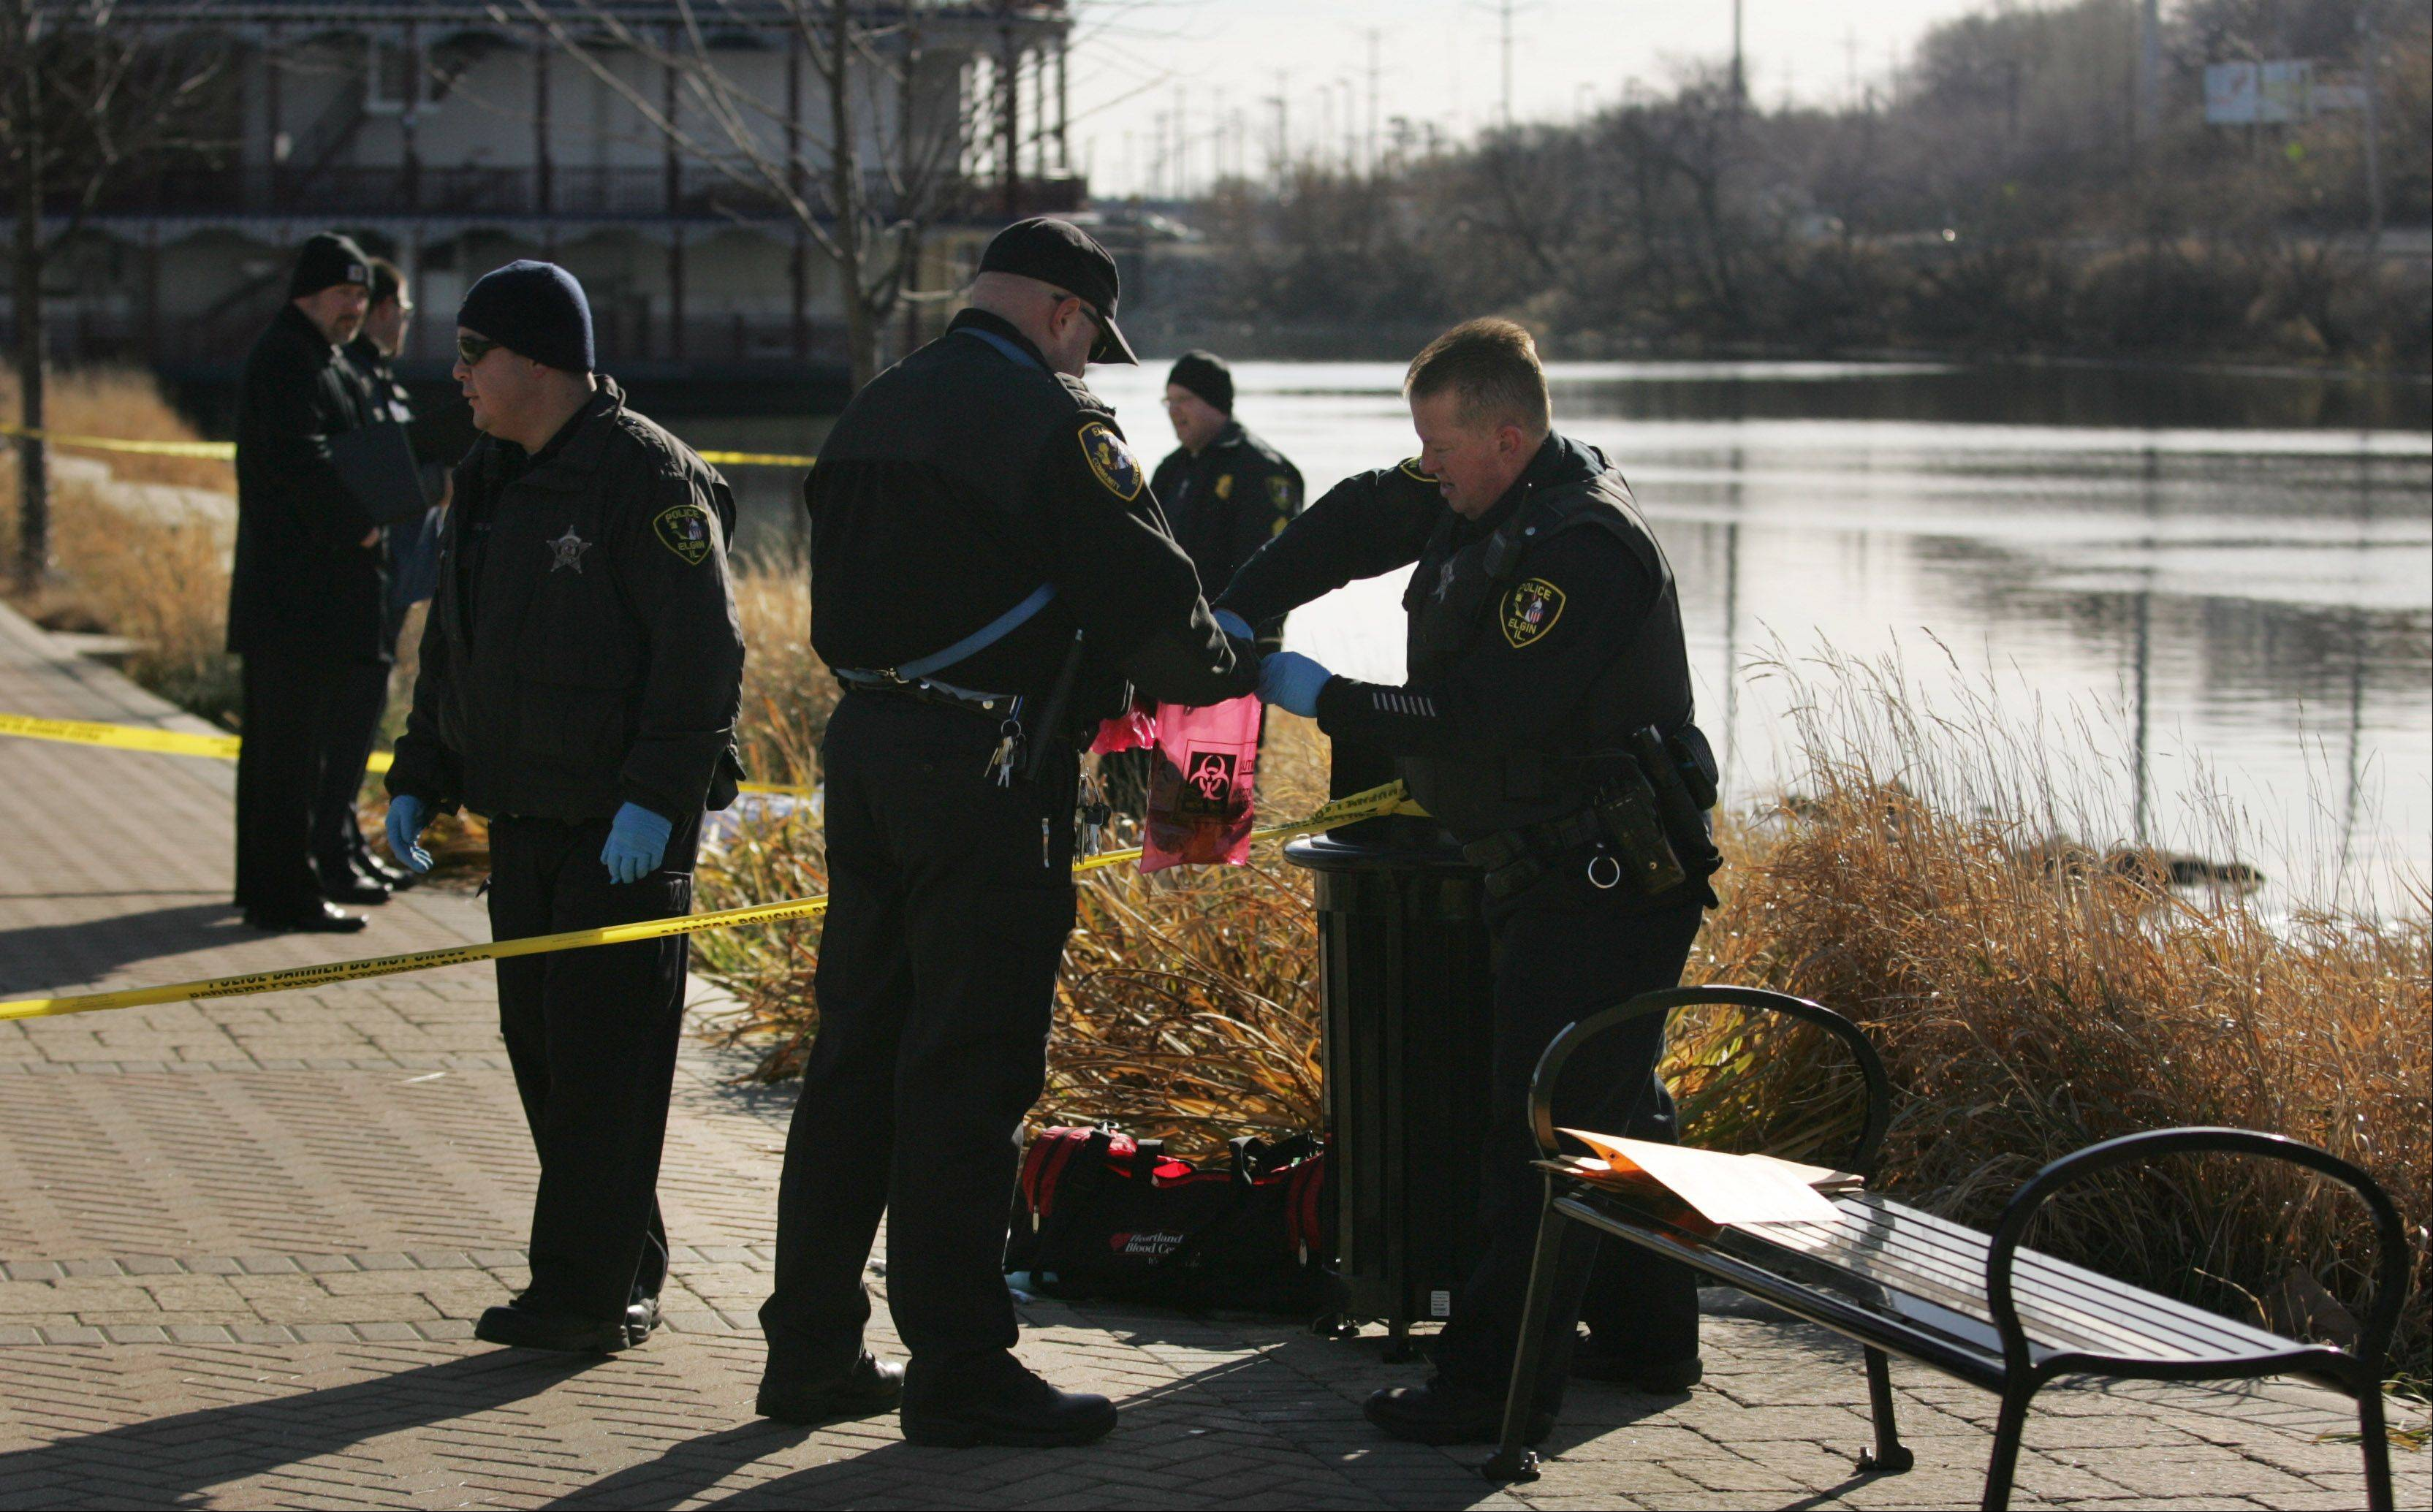 Elgin police evidence technician Mike Gough, right, places some of the belongings of a drowning victim into a bag held by animal control officer James Rog Tuesday along the Fox River near Festival Park in Elgin.